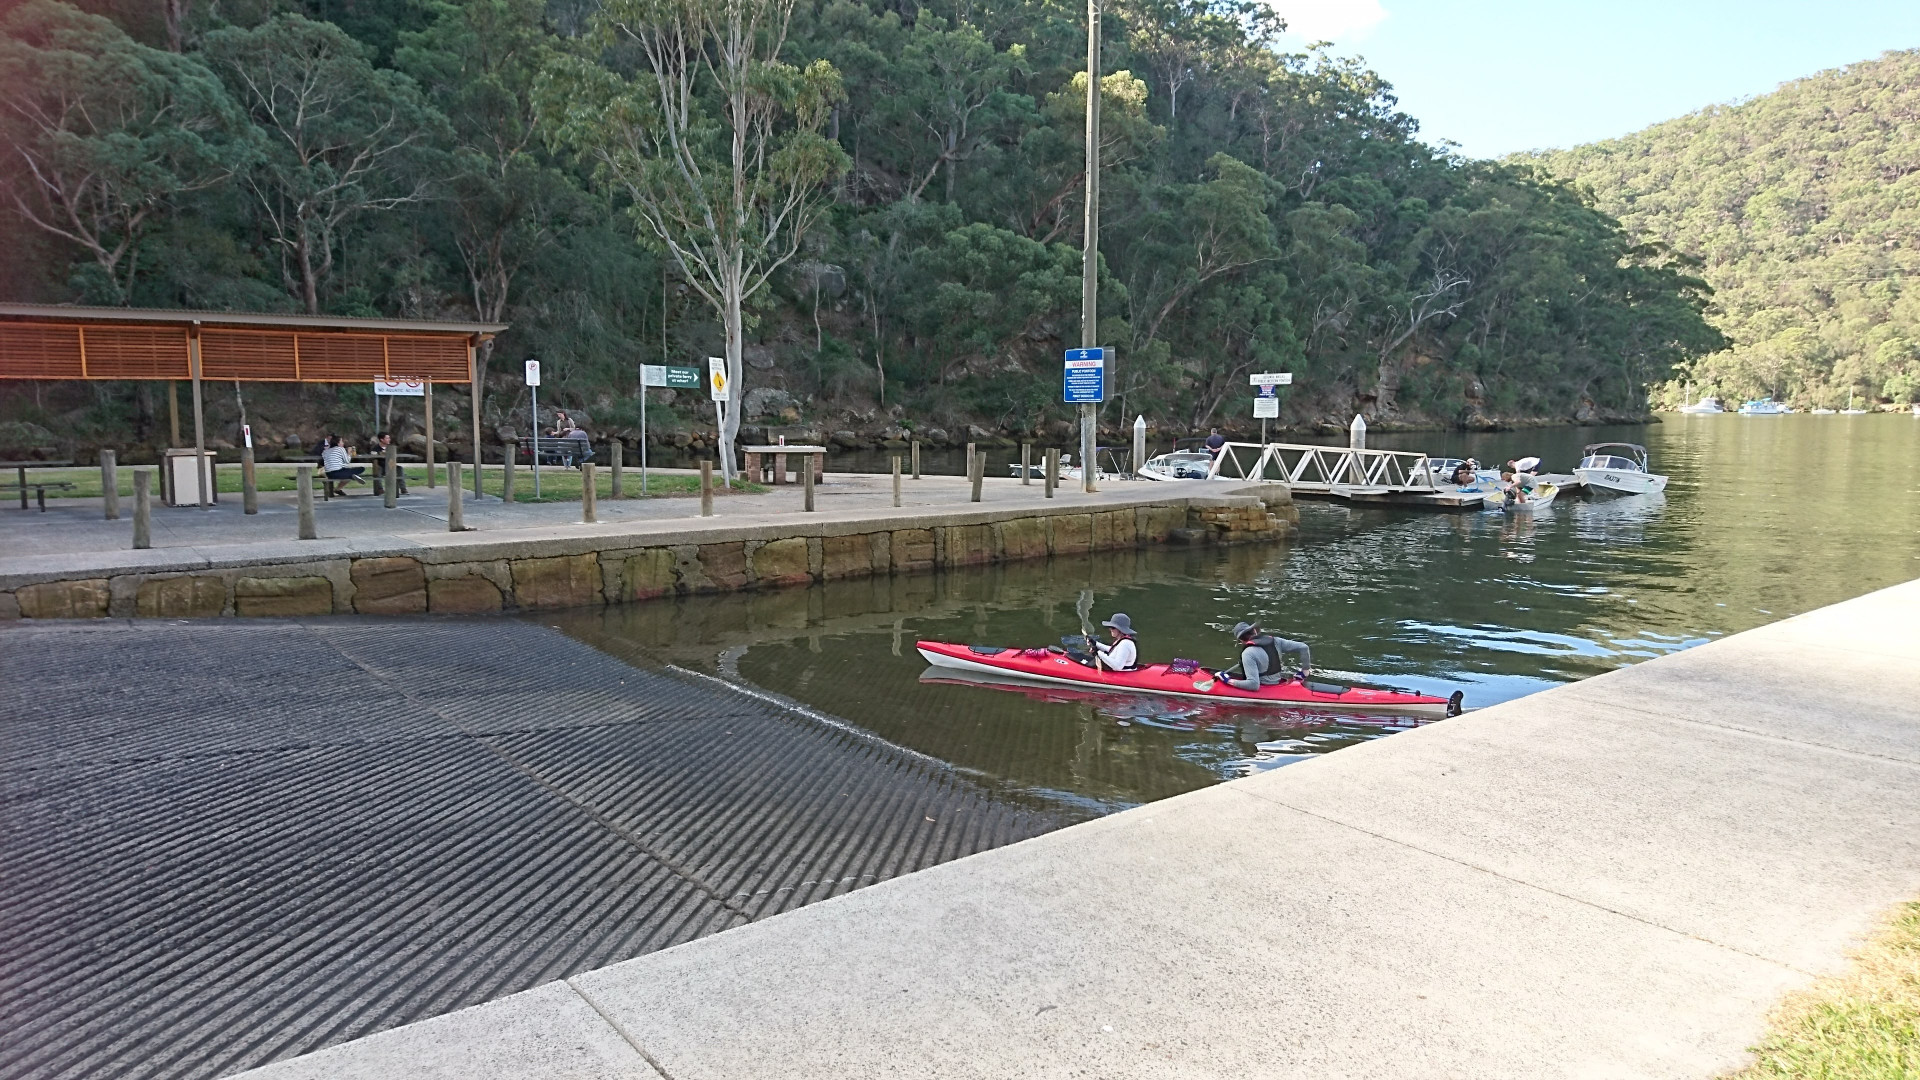 Kayak coming out at the boat launching ramp